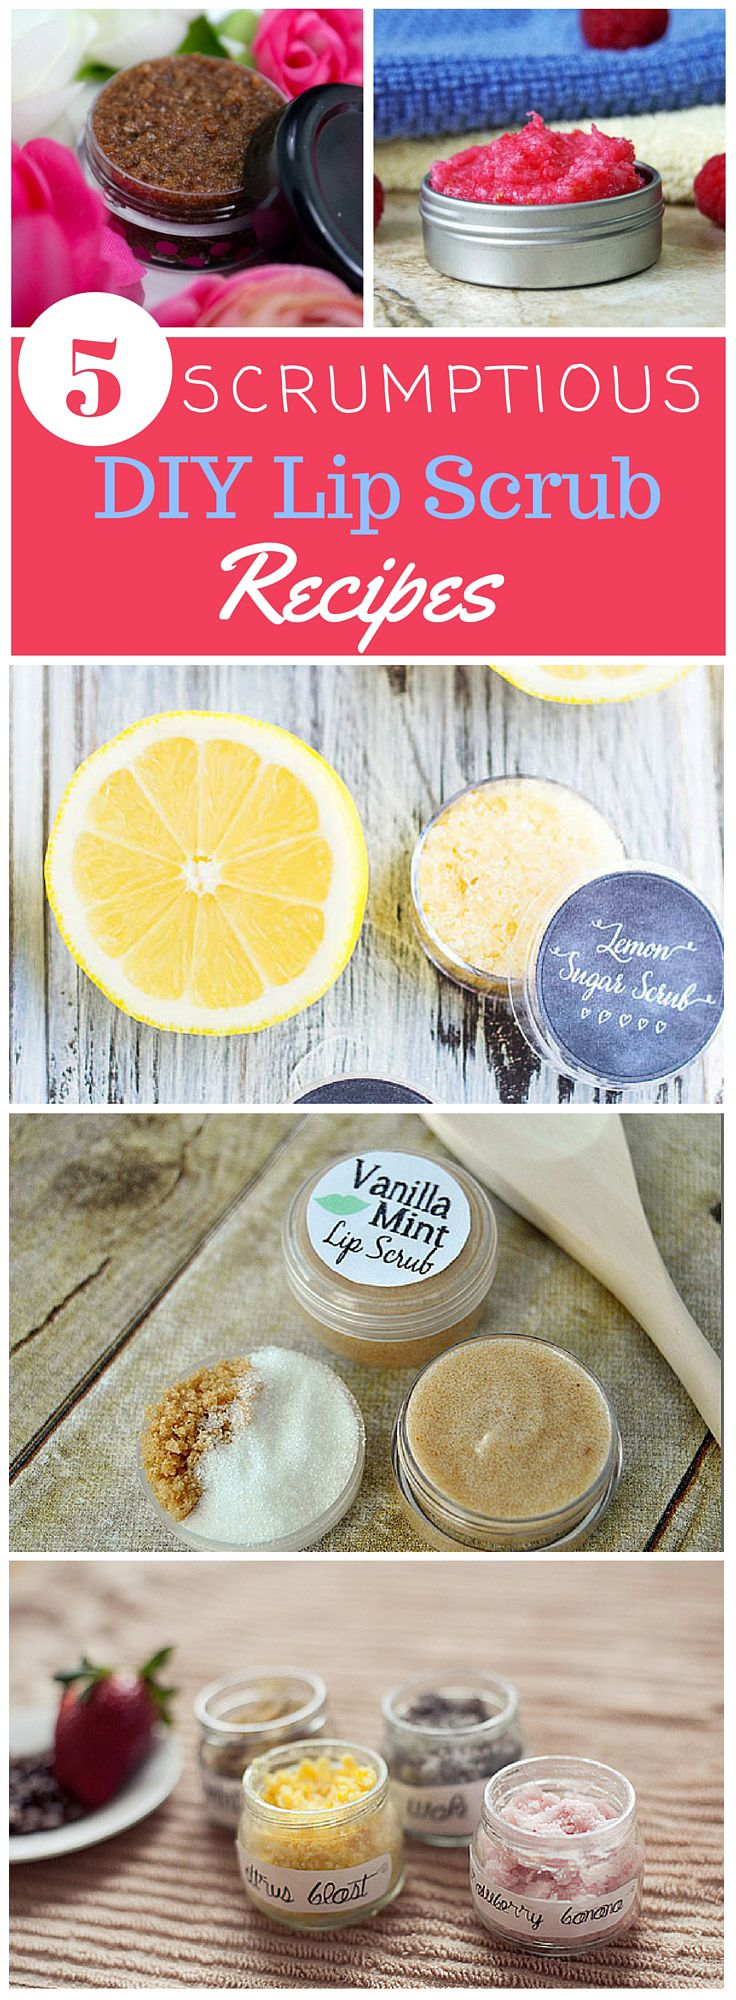 5 Scrumptious DIY Lip Scrub Recipes #lipscrubs